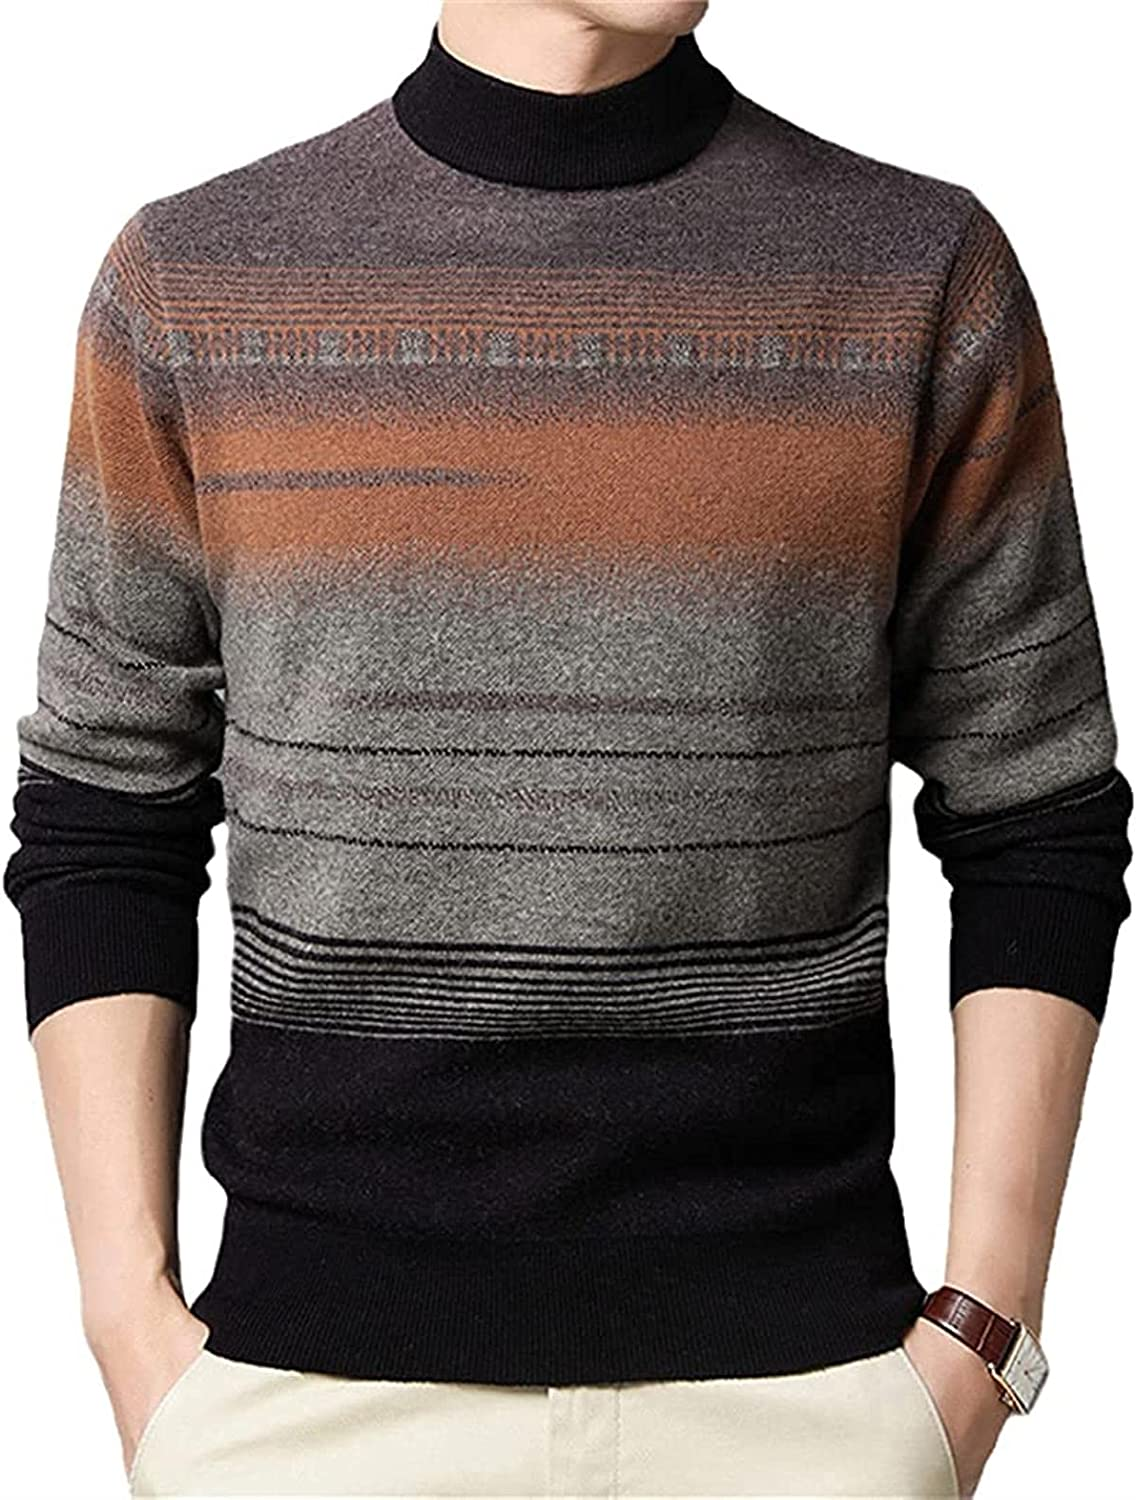 JOAOL Winter Warm Sweaters Men Clothing Streetwear Wool Sweater Pullover Colthes